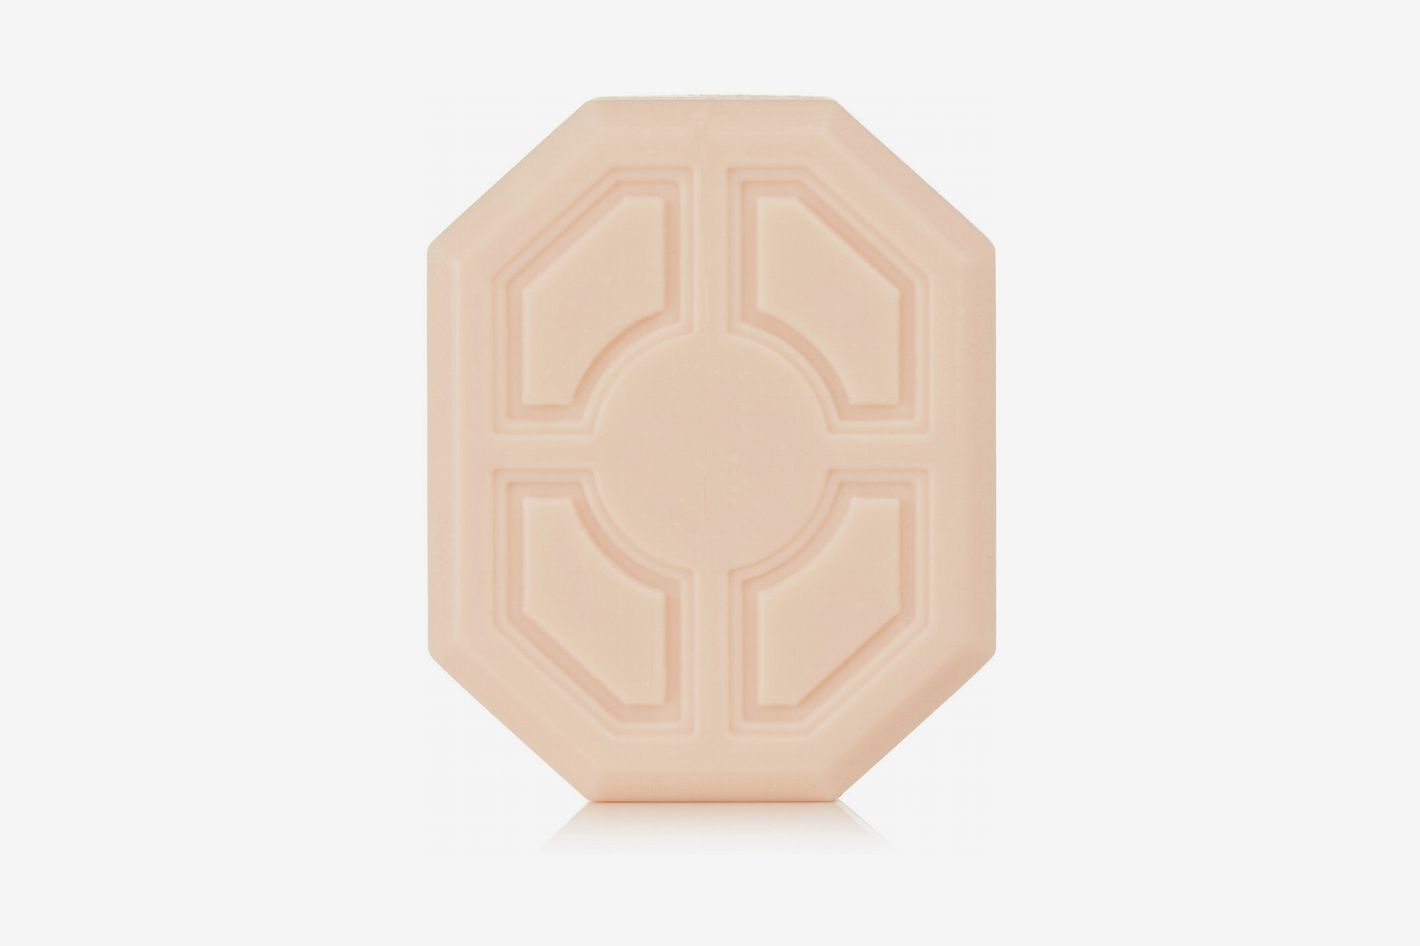 Buly 1803 Savon Superfin Soap - Mexican Tuberose